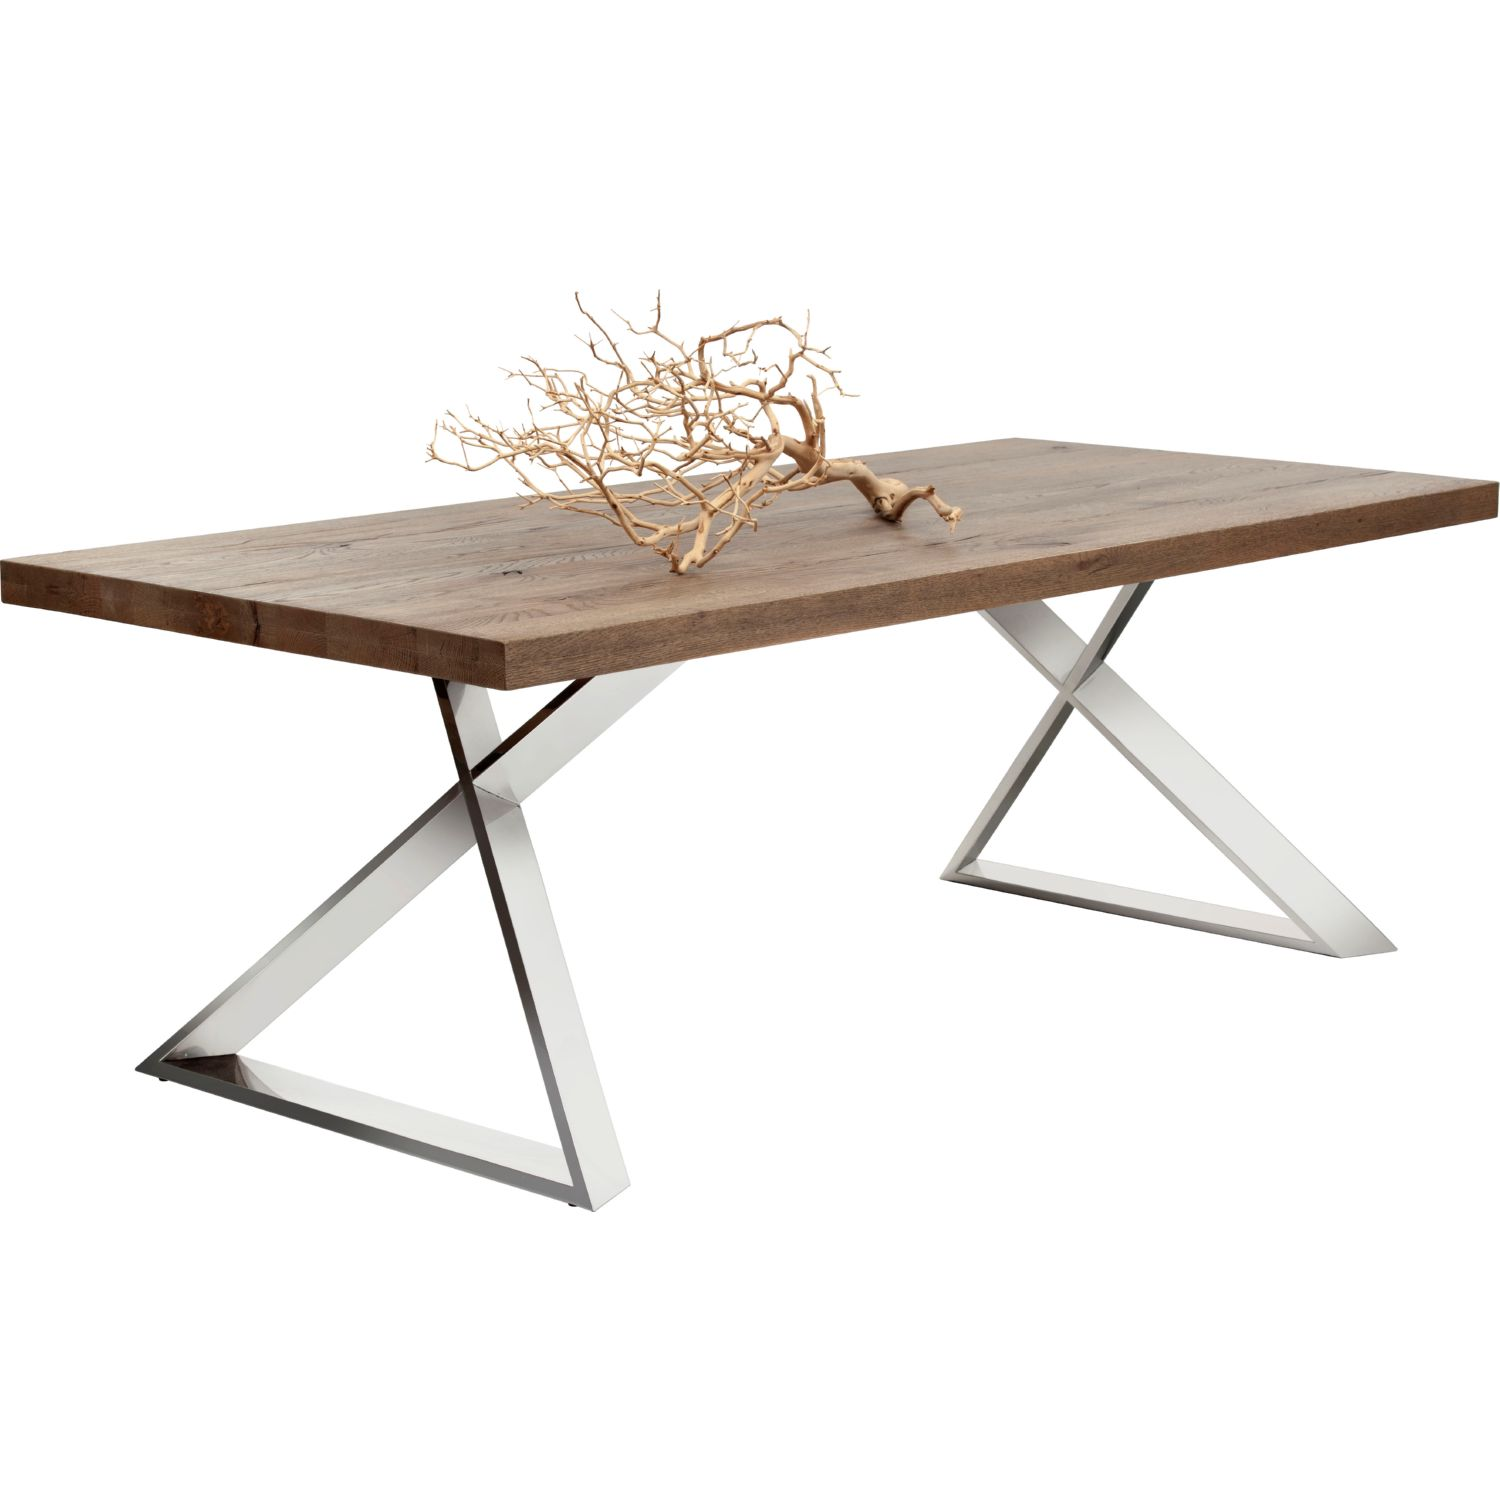 Sunpan 101026 cruze dining table w solid distressed oak top on cruze dining table w solid distressed oak top on stainless steel legs geotapseo Image collections